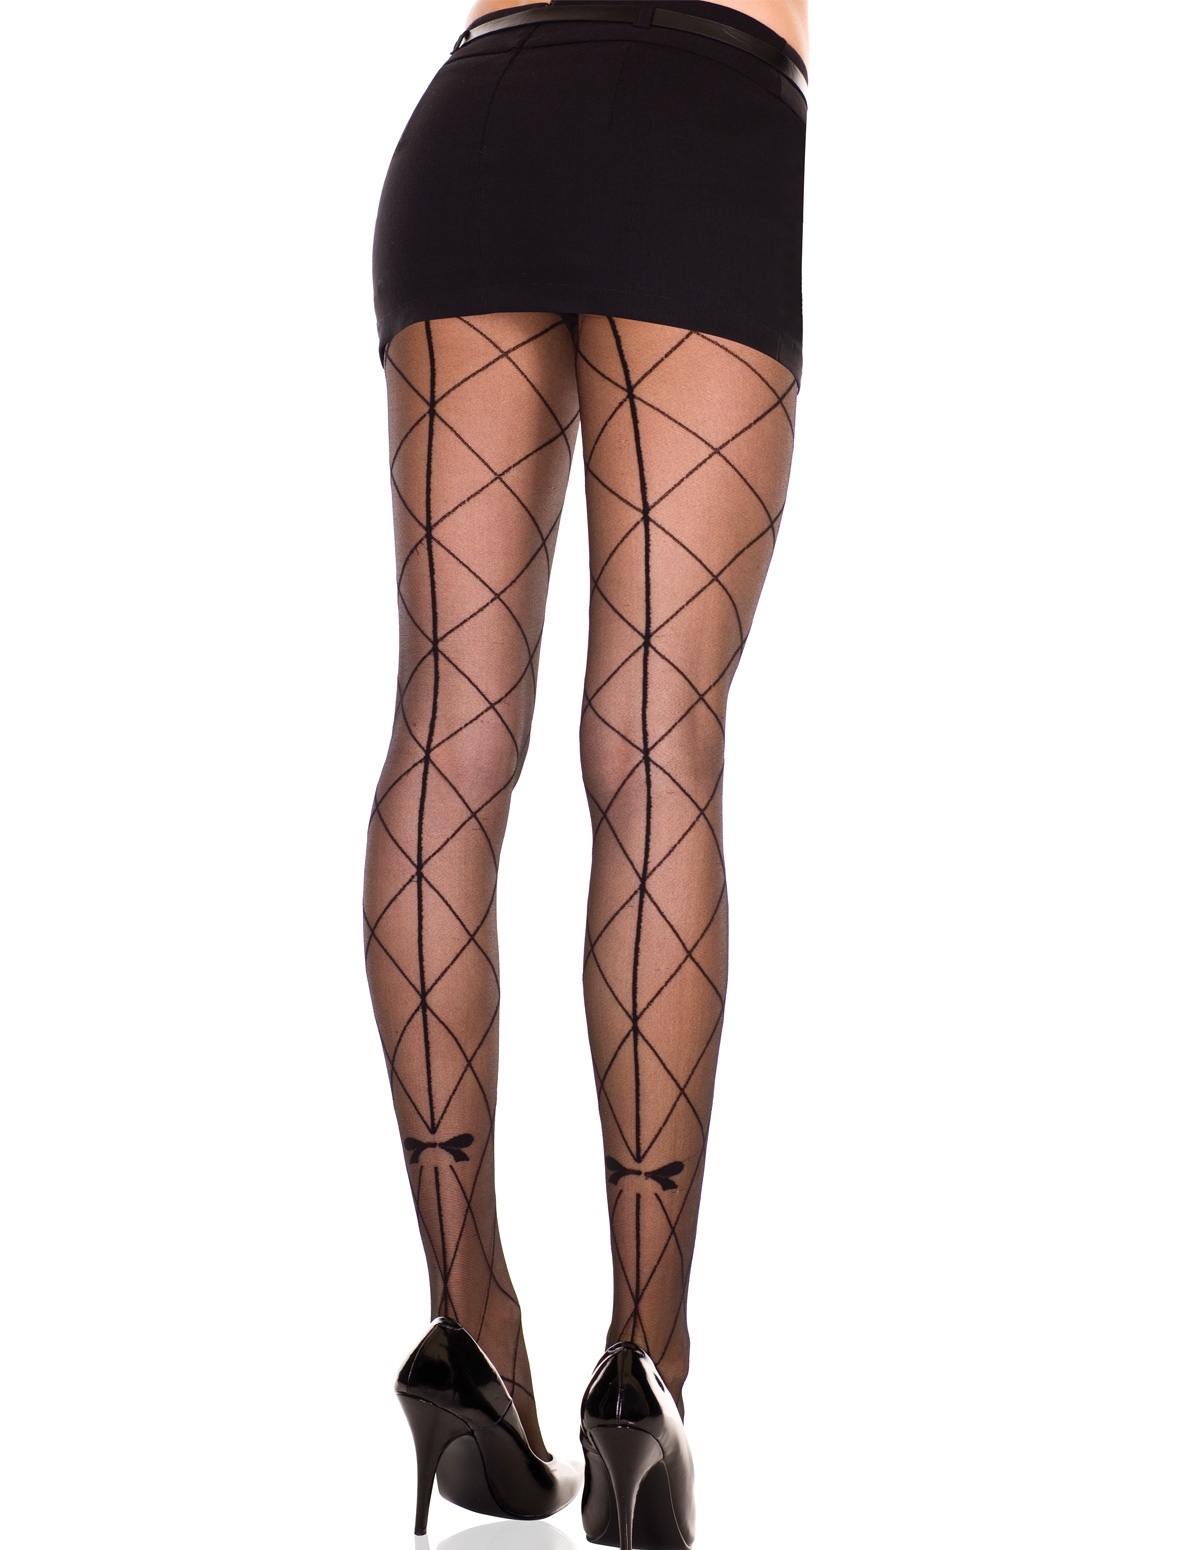 Faux Large Net Pantyhose With Bow Detail